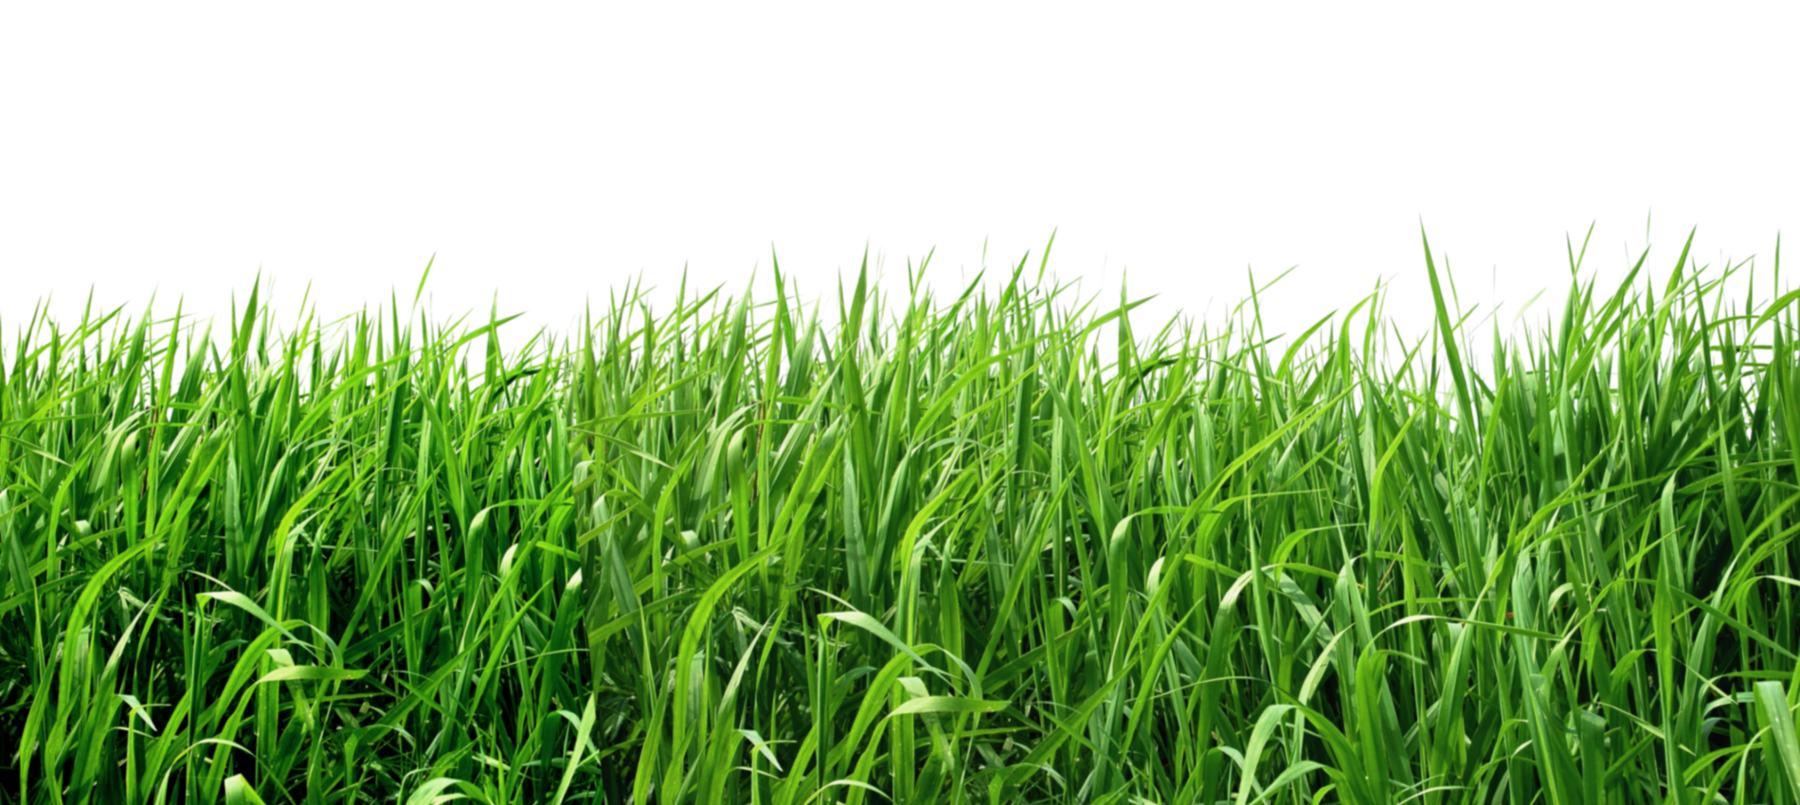 Grass png images. Image purepng free transparent